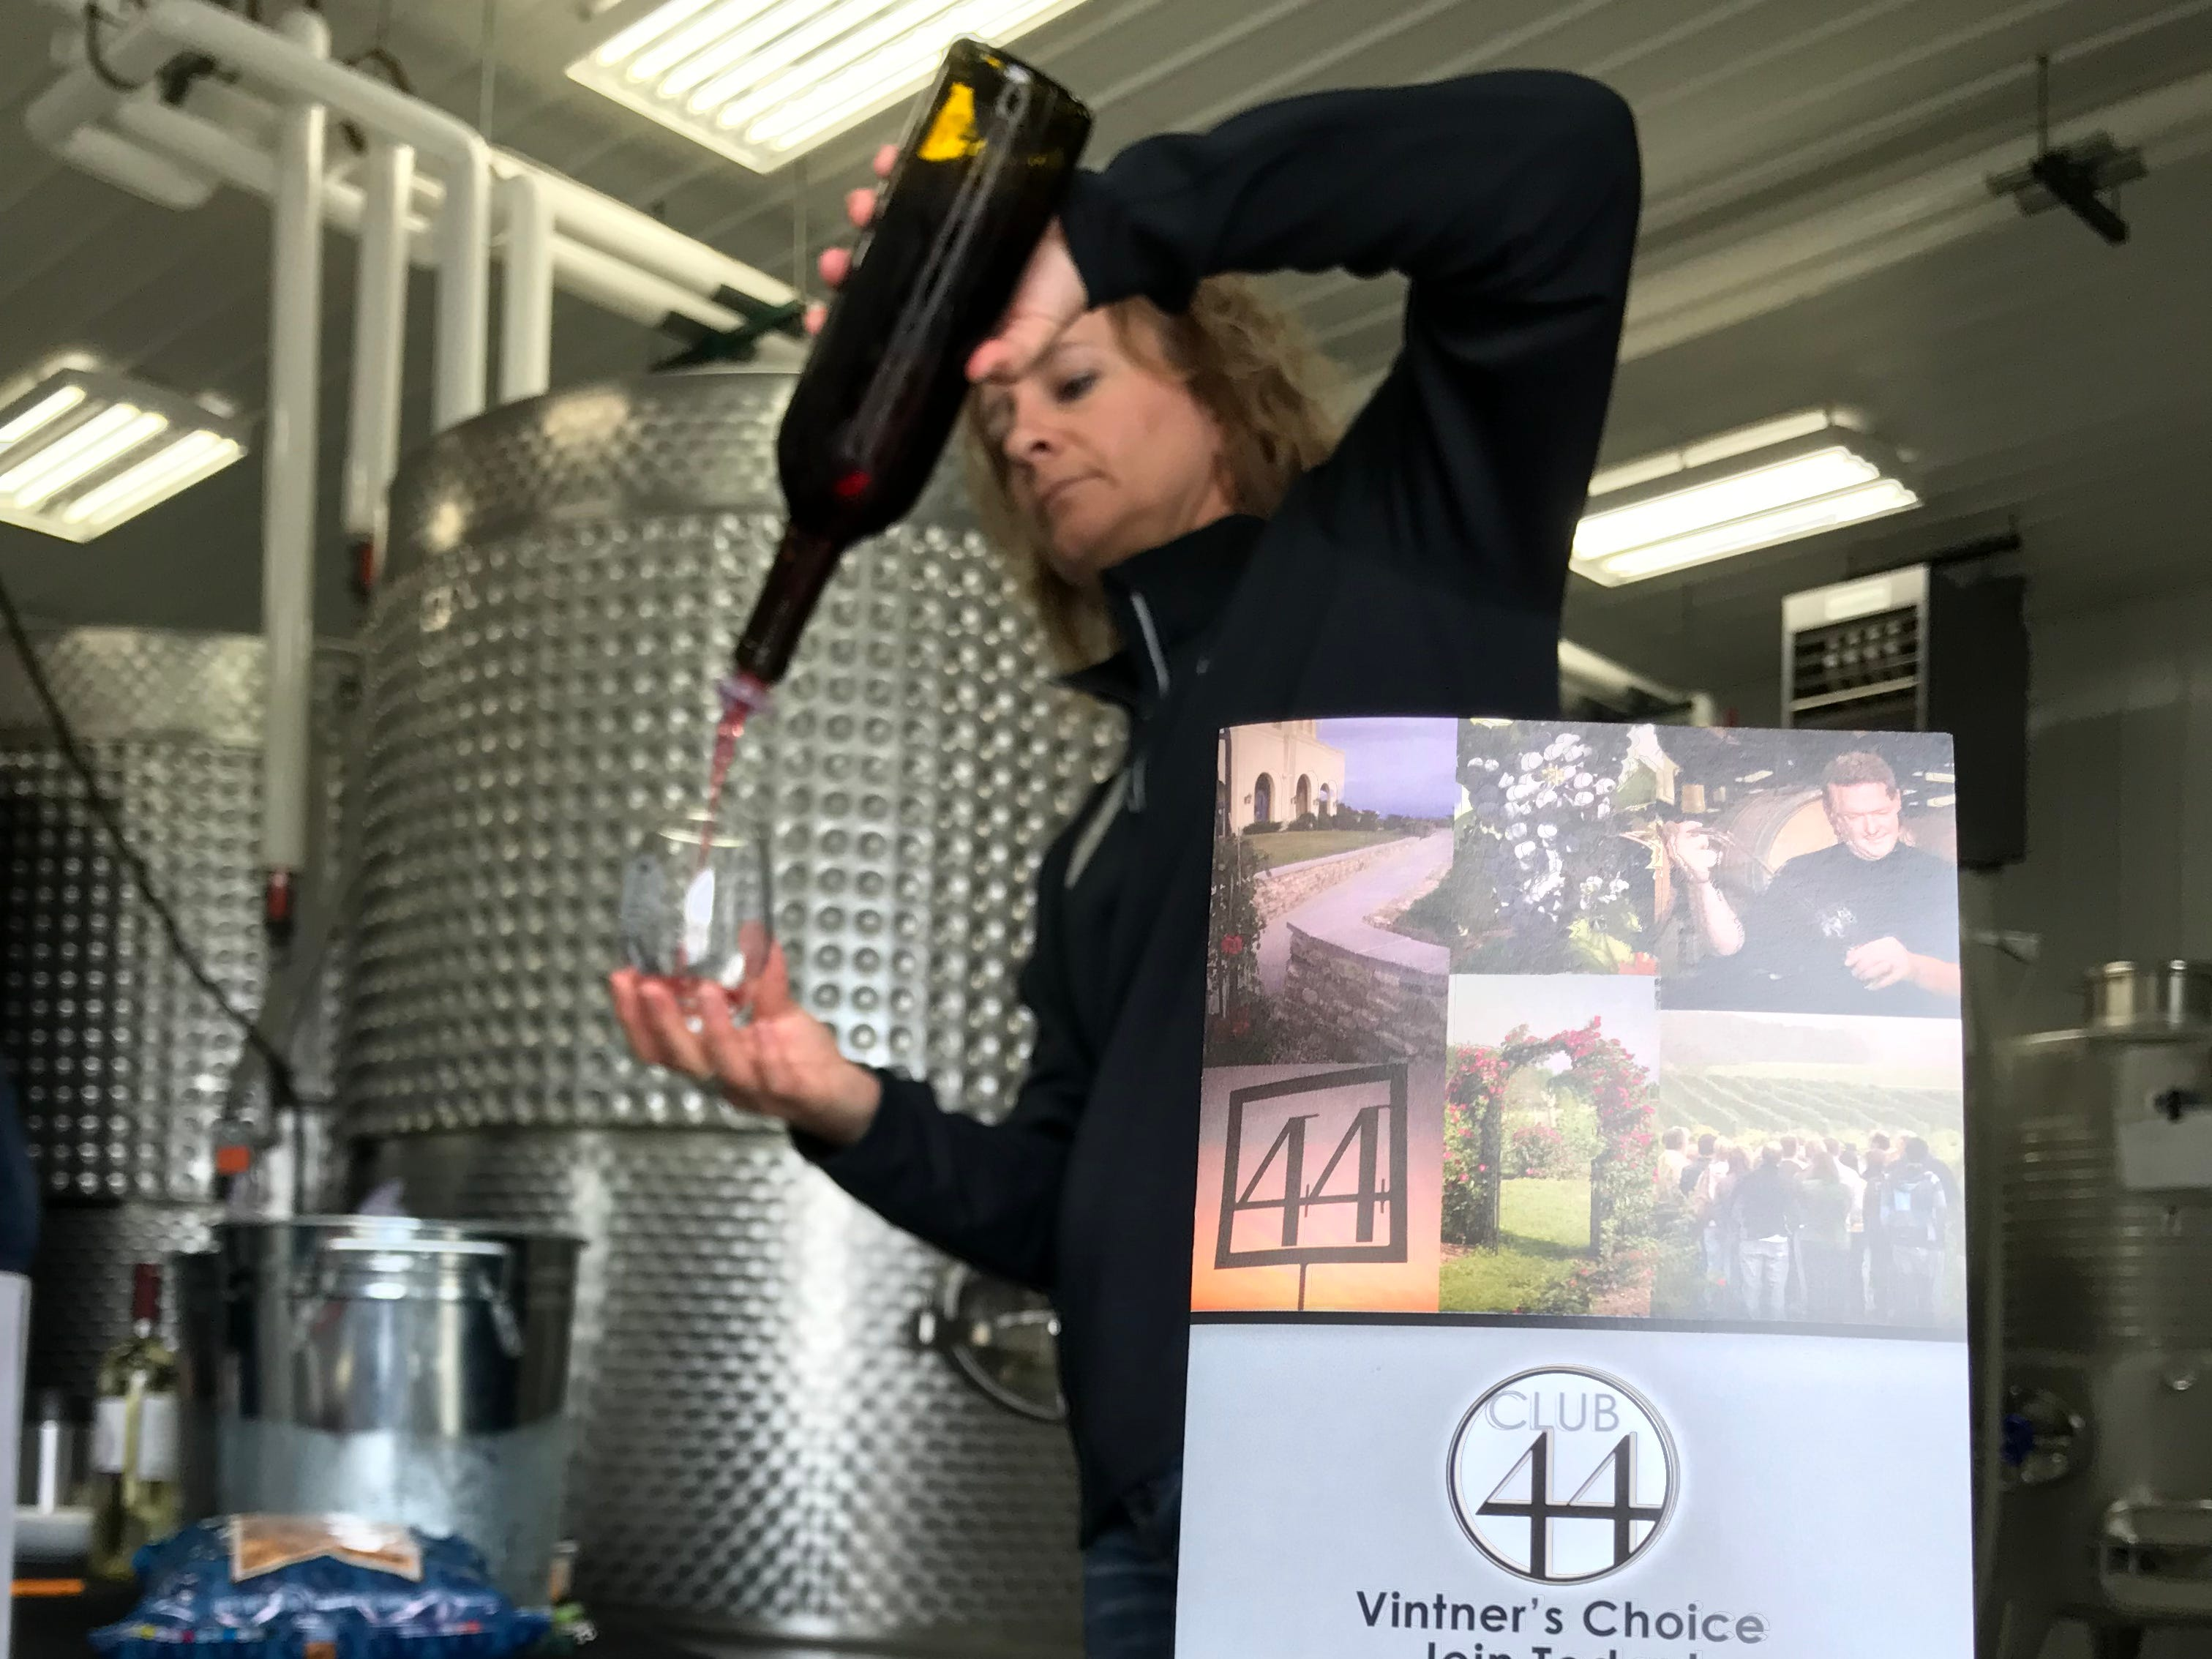 Be a VIP for a day at Parallel 44 Winery in Kewaunee